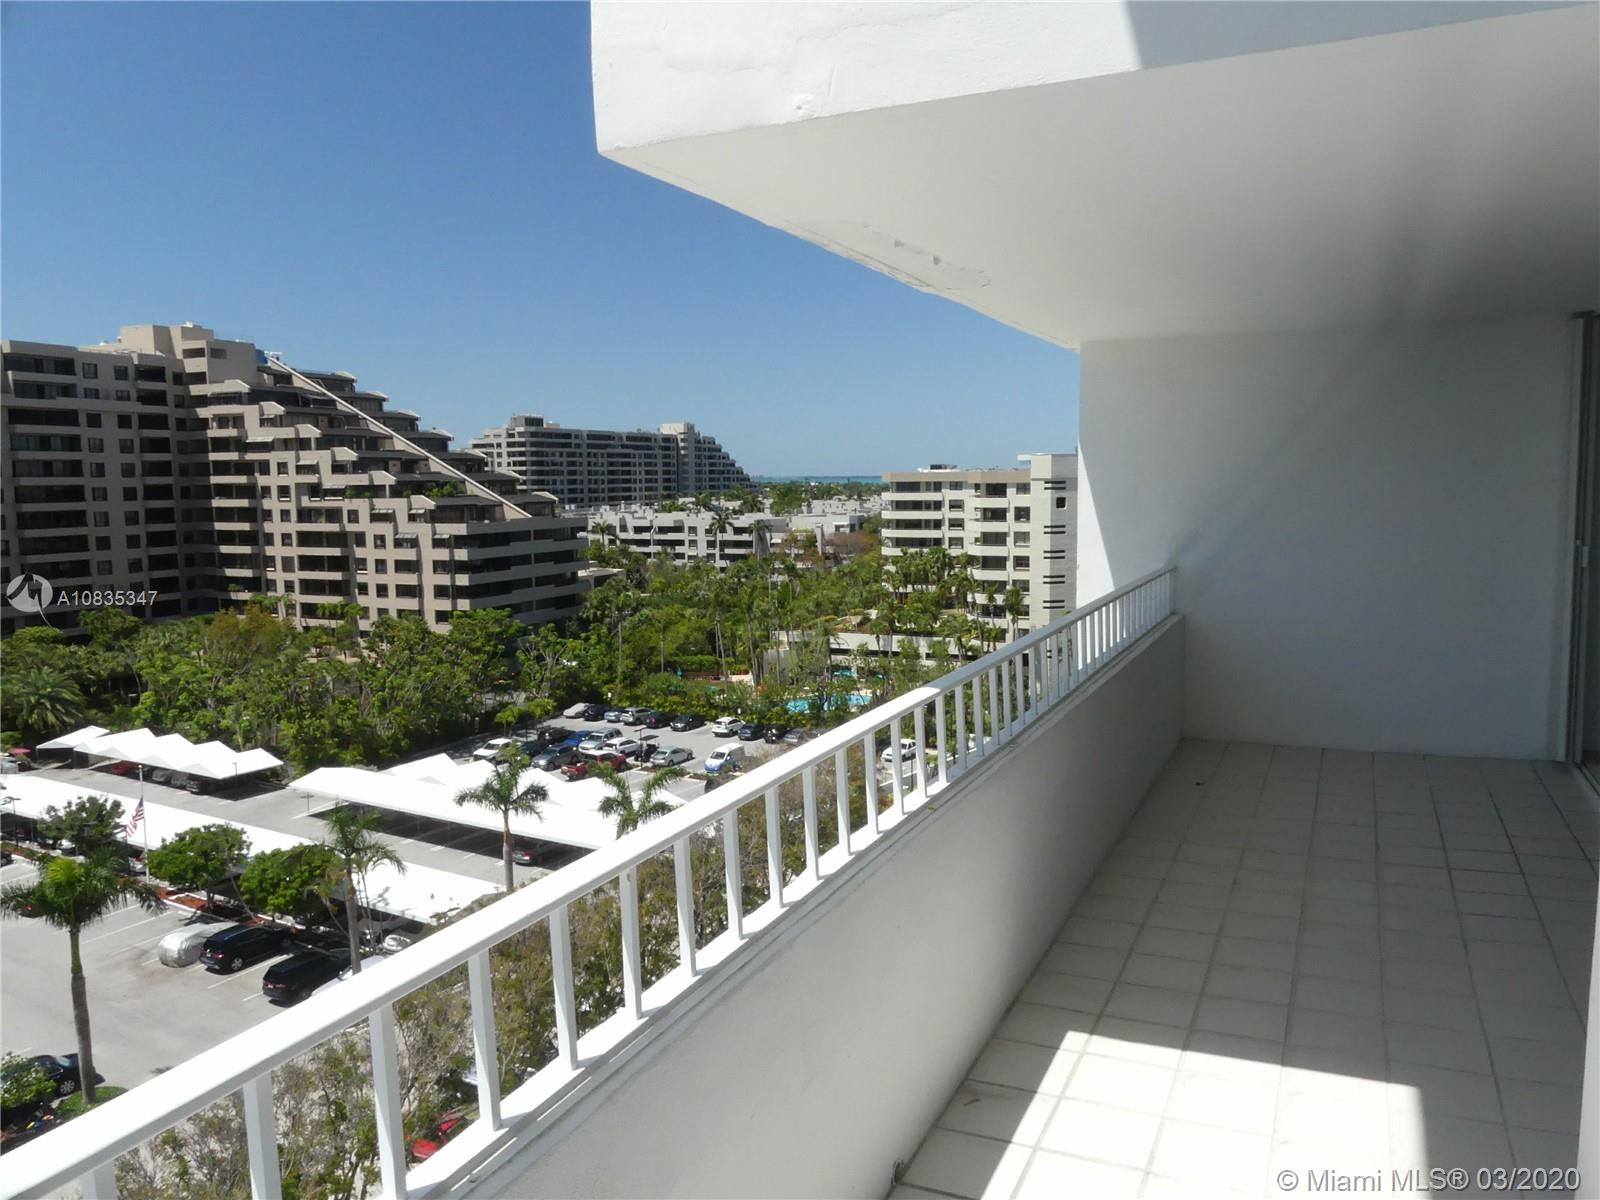 Commodore Club South #903 - 199 Ocean Lane Dr #903, Key Biscayne, FL 33149